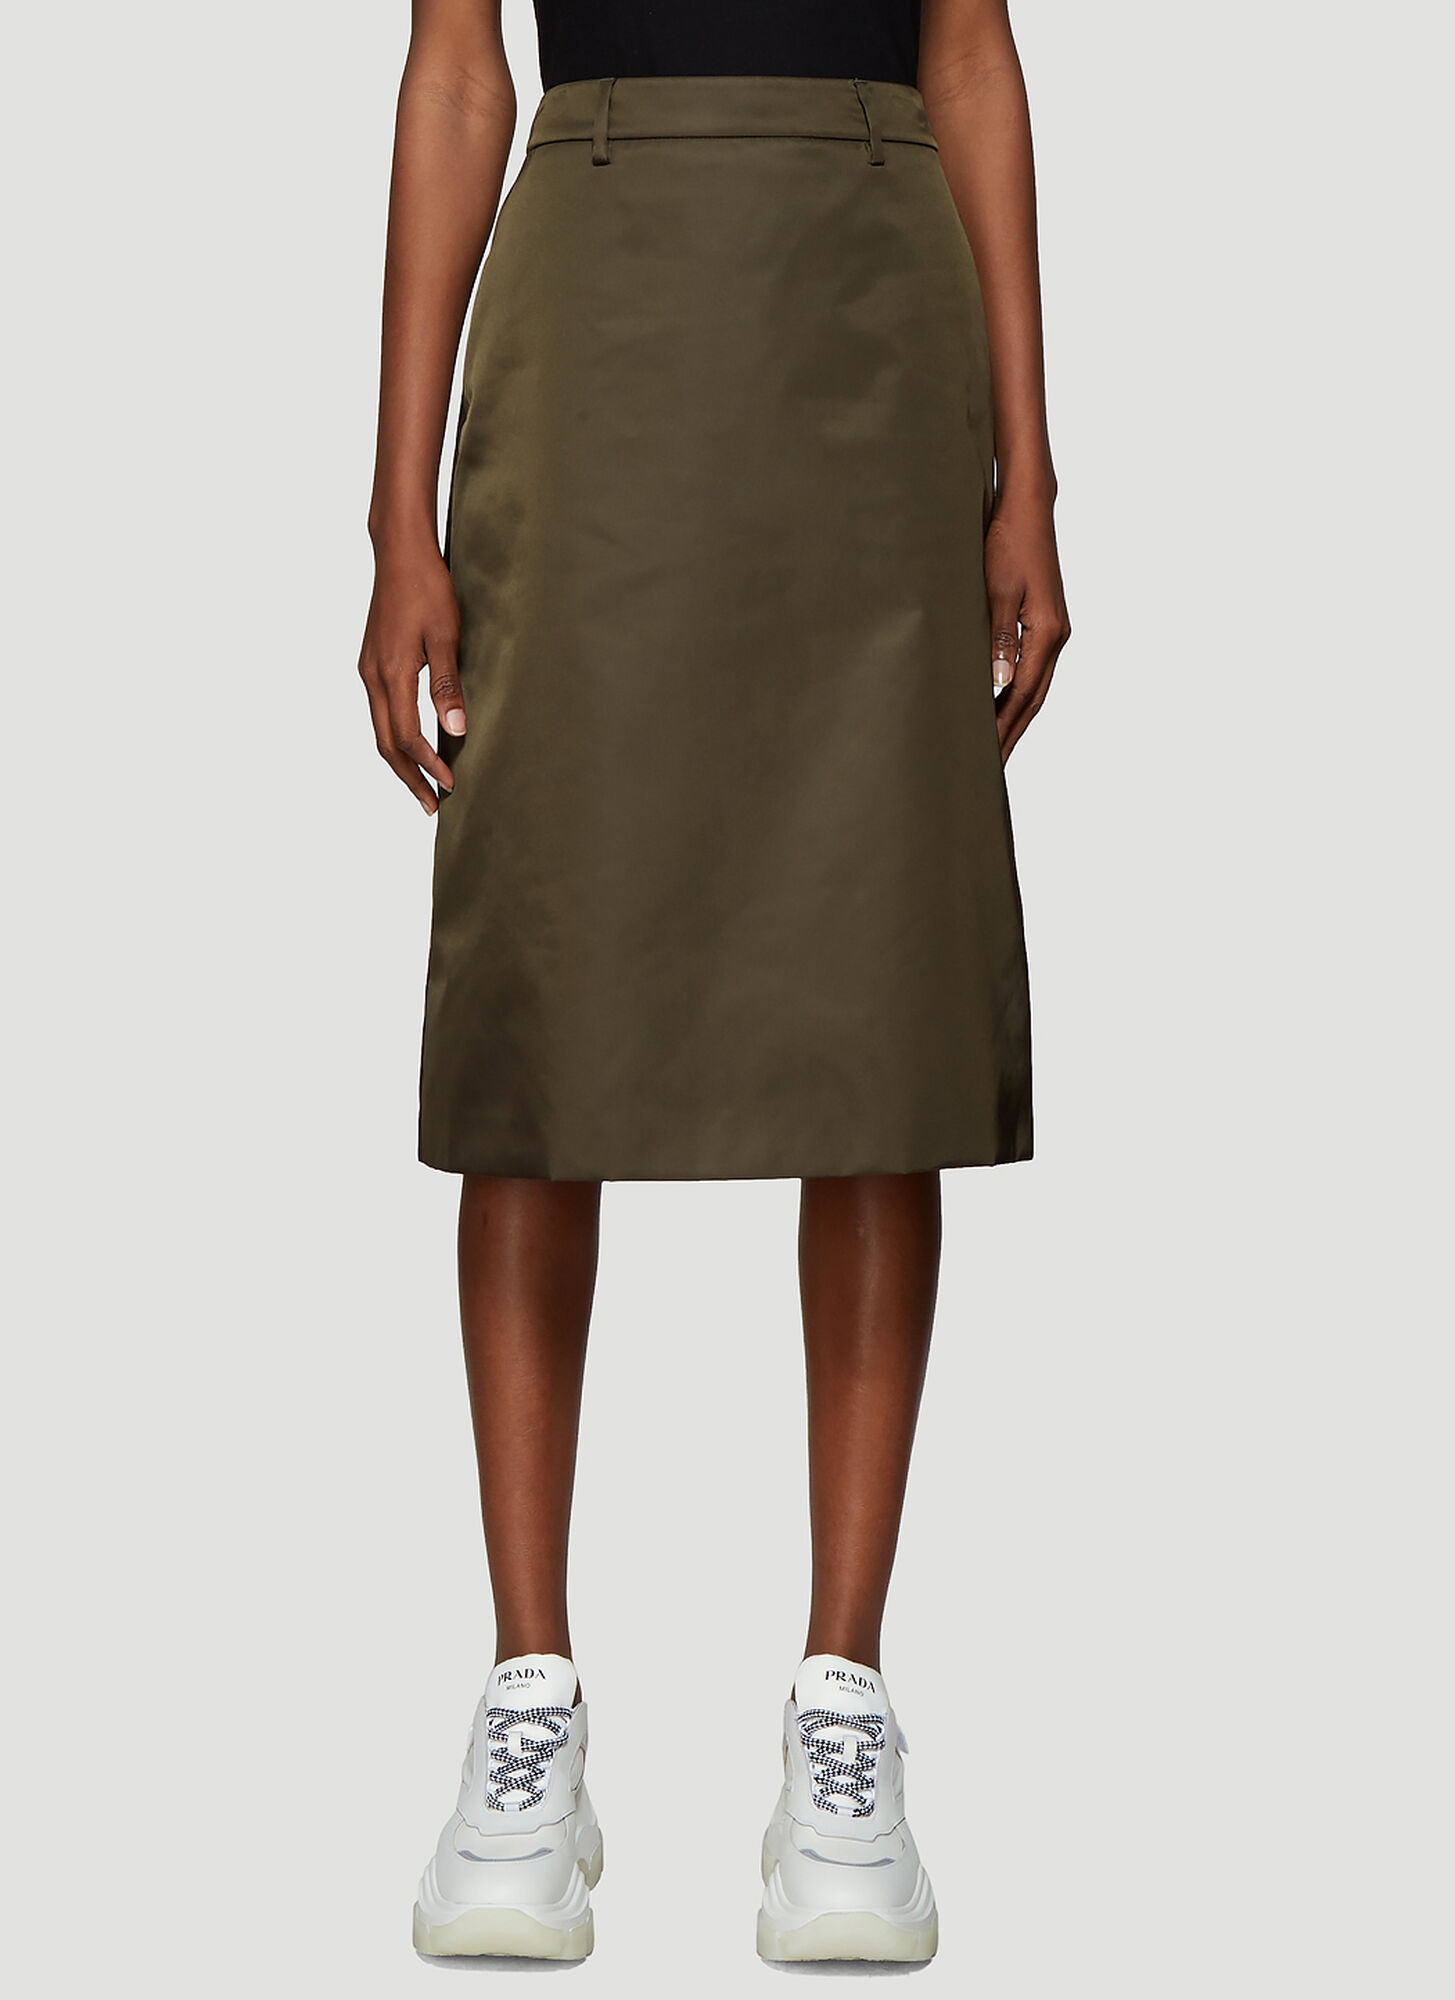 Prada Nylon Gabardine Skirt in Green